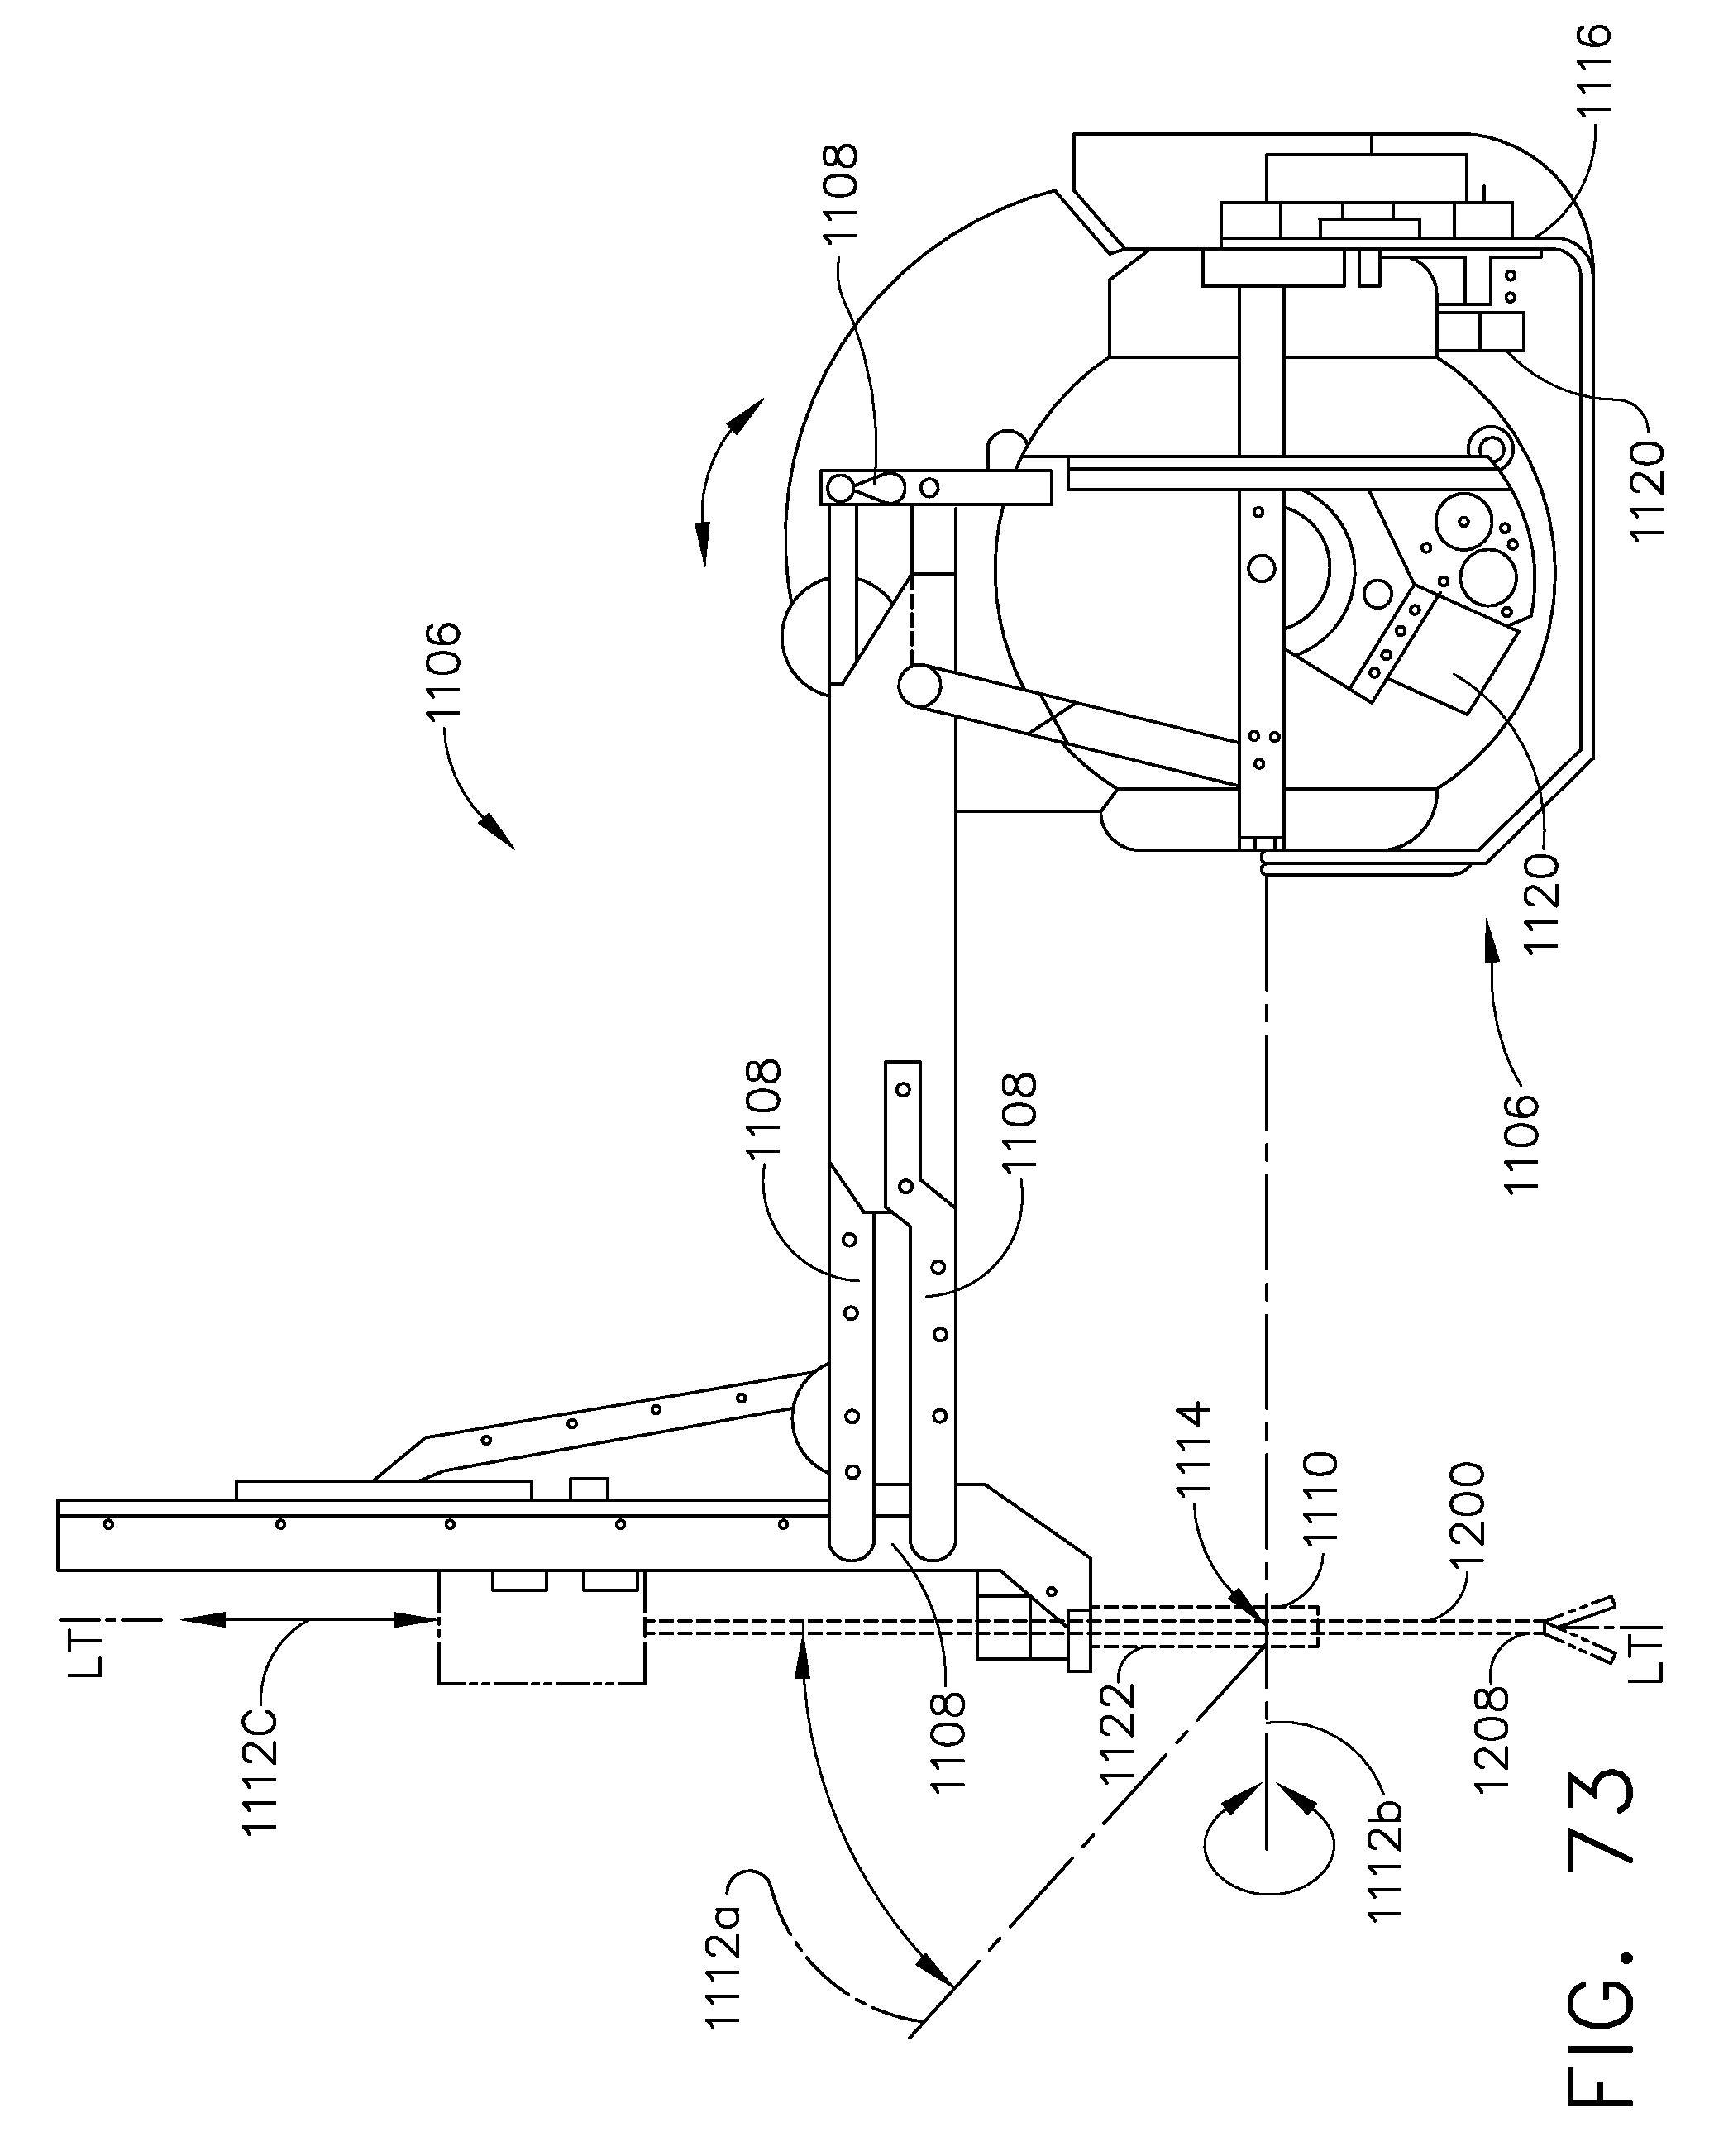 Patent Us 9179912 B2 Stun Gun Schematic Diagram As Well Emp Pulse Generator Images